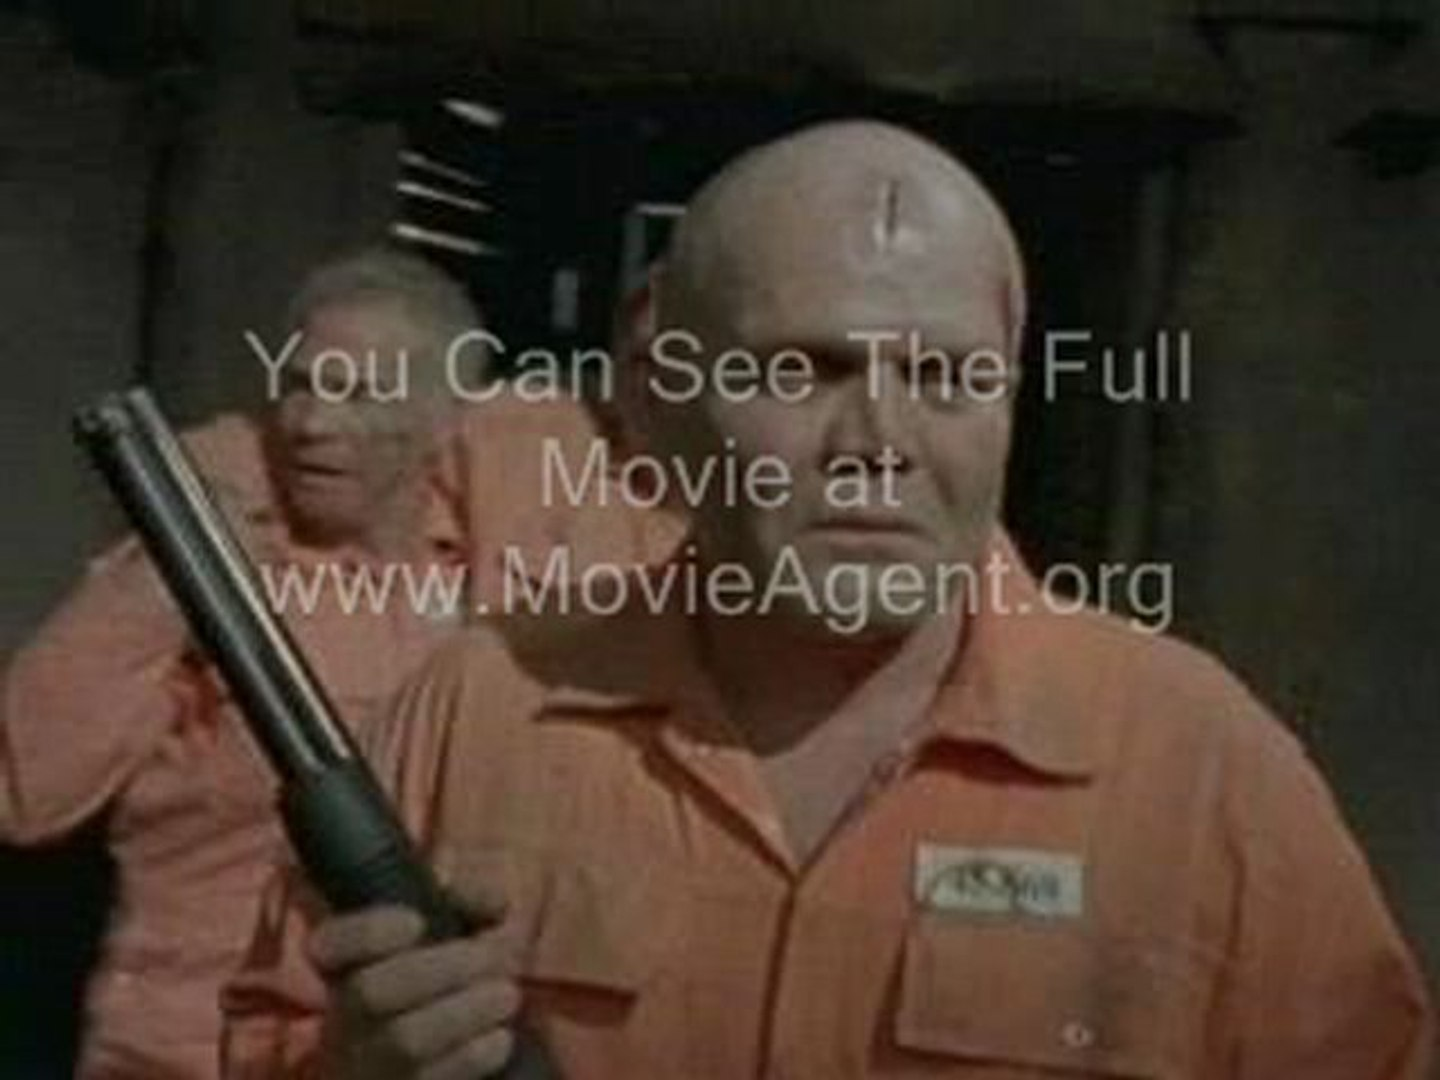 House of Blood (2006) Part 1 of 18 FULL movie stream